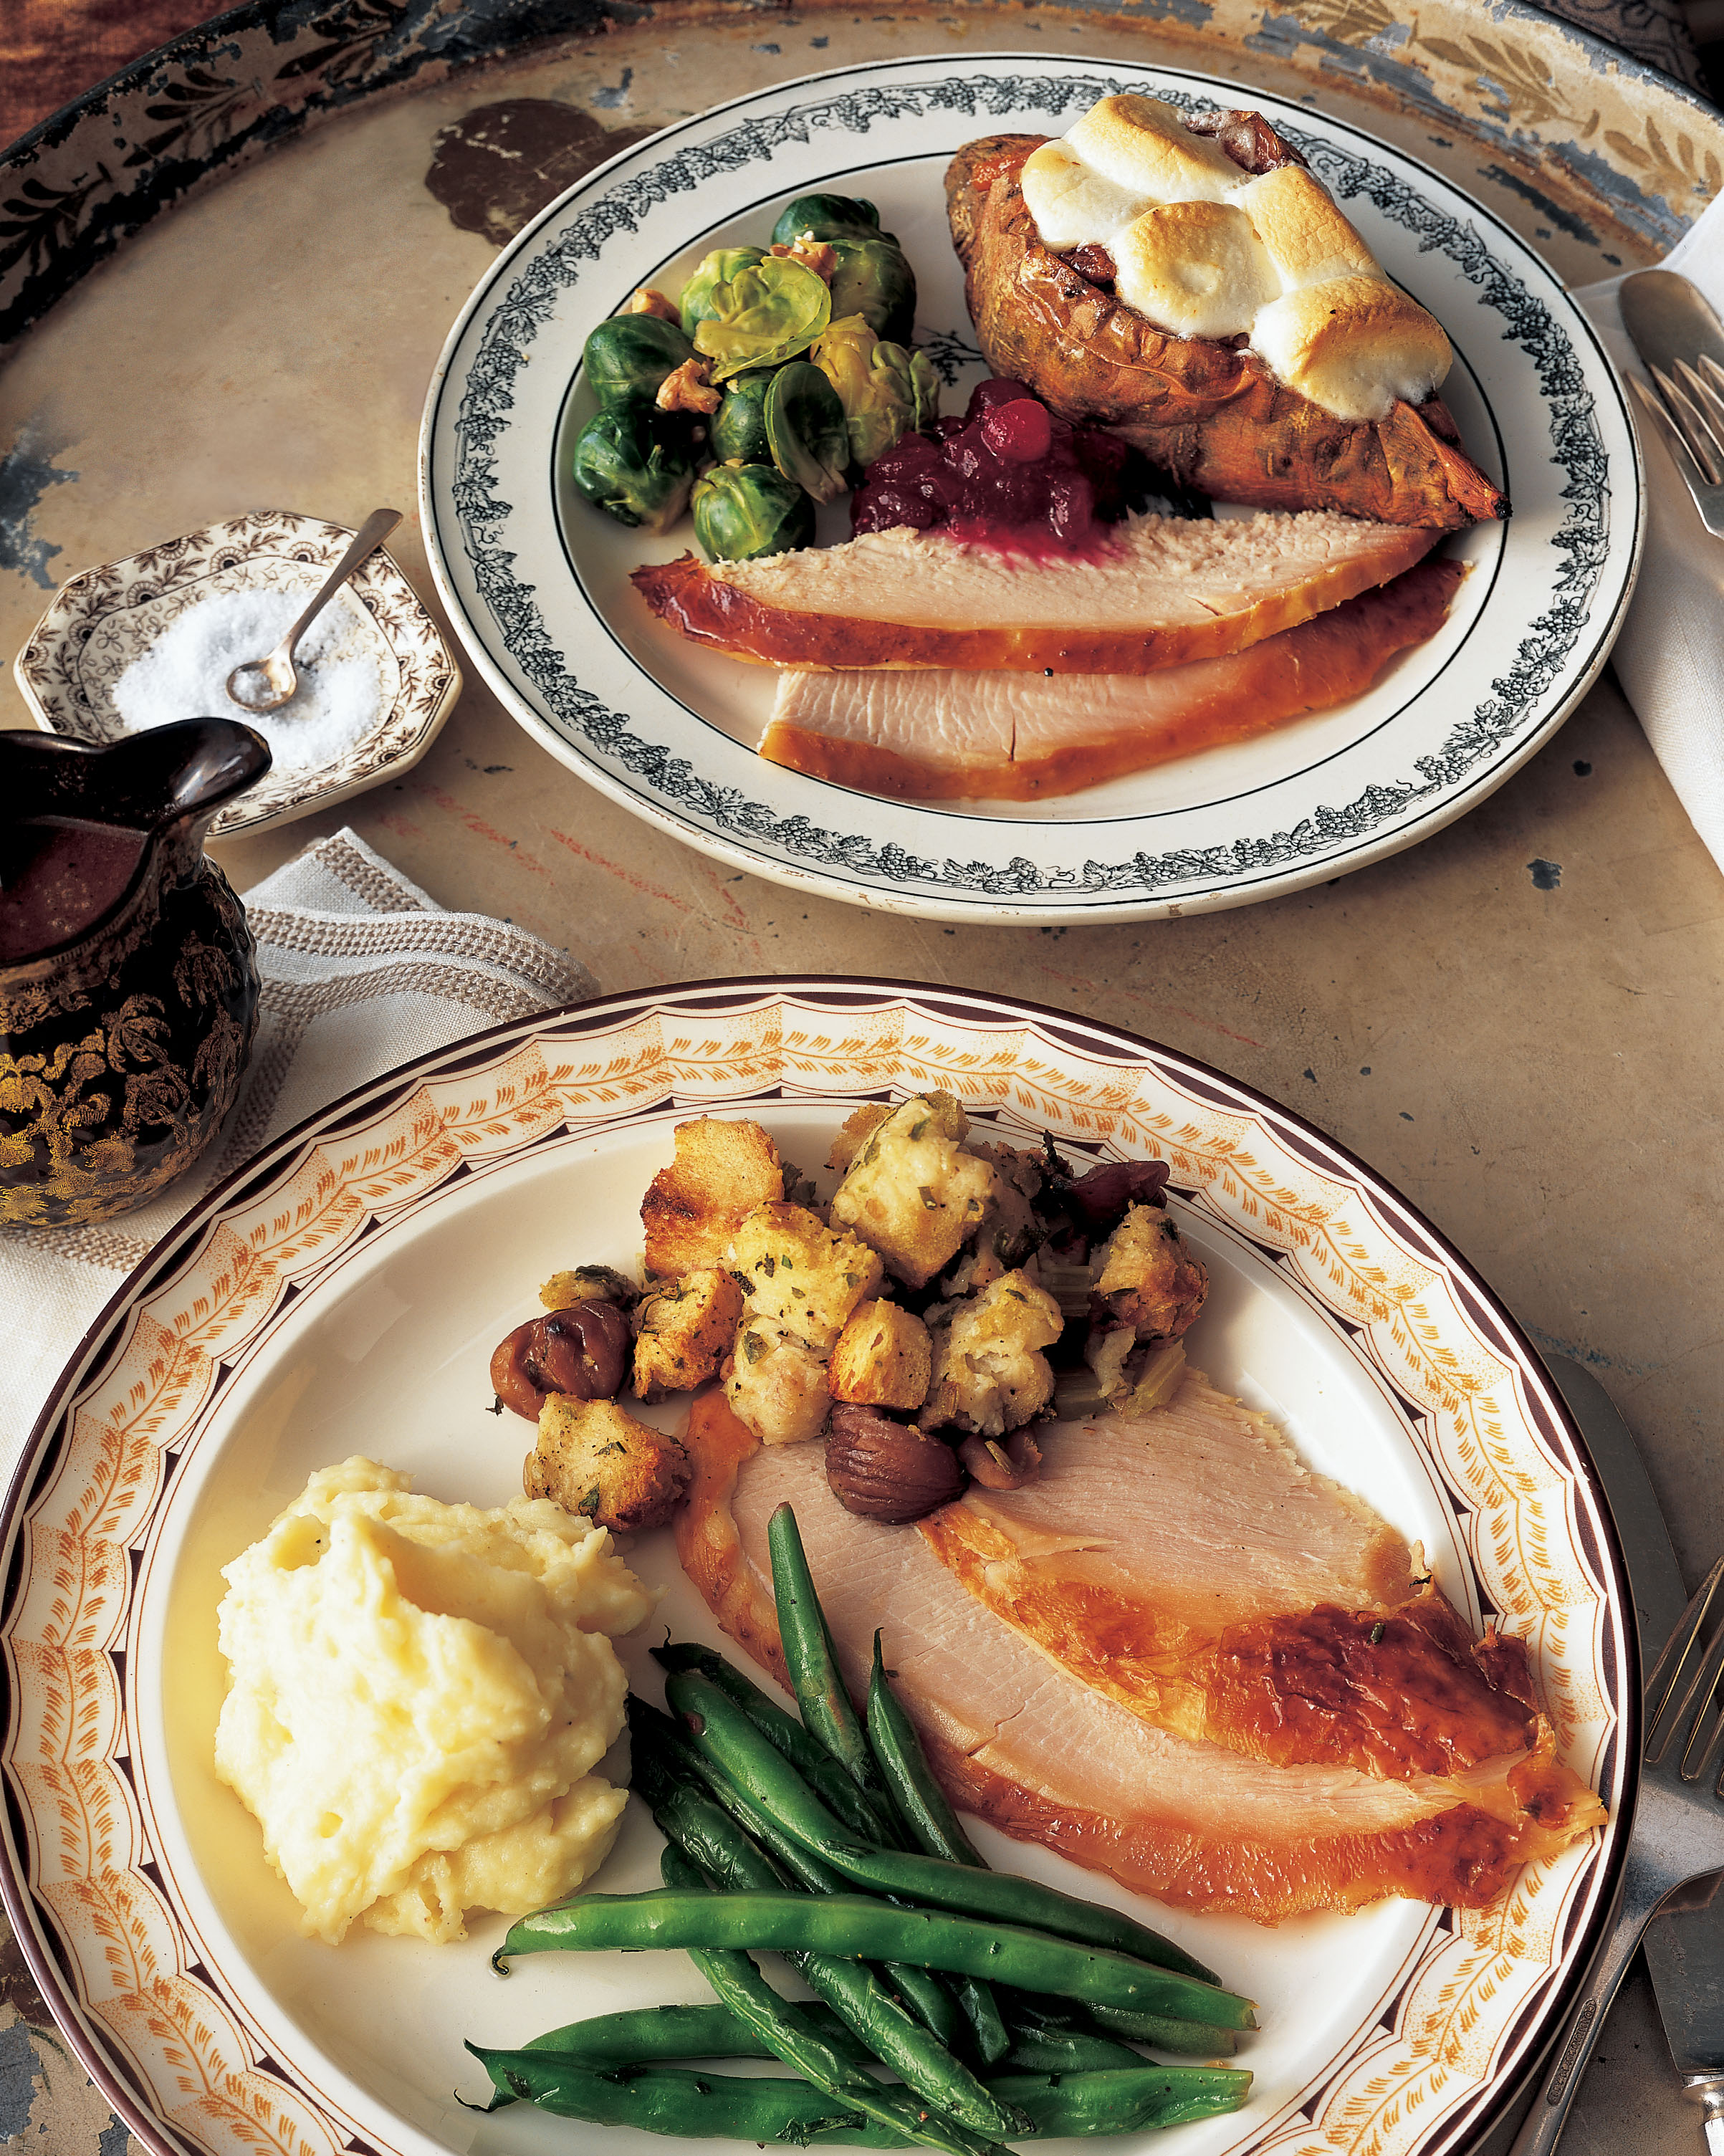 A Classic Thanksgiving Dinner Menu With Turkey And All The